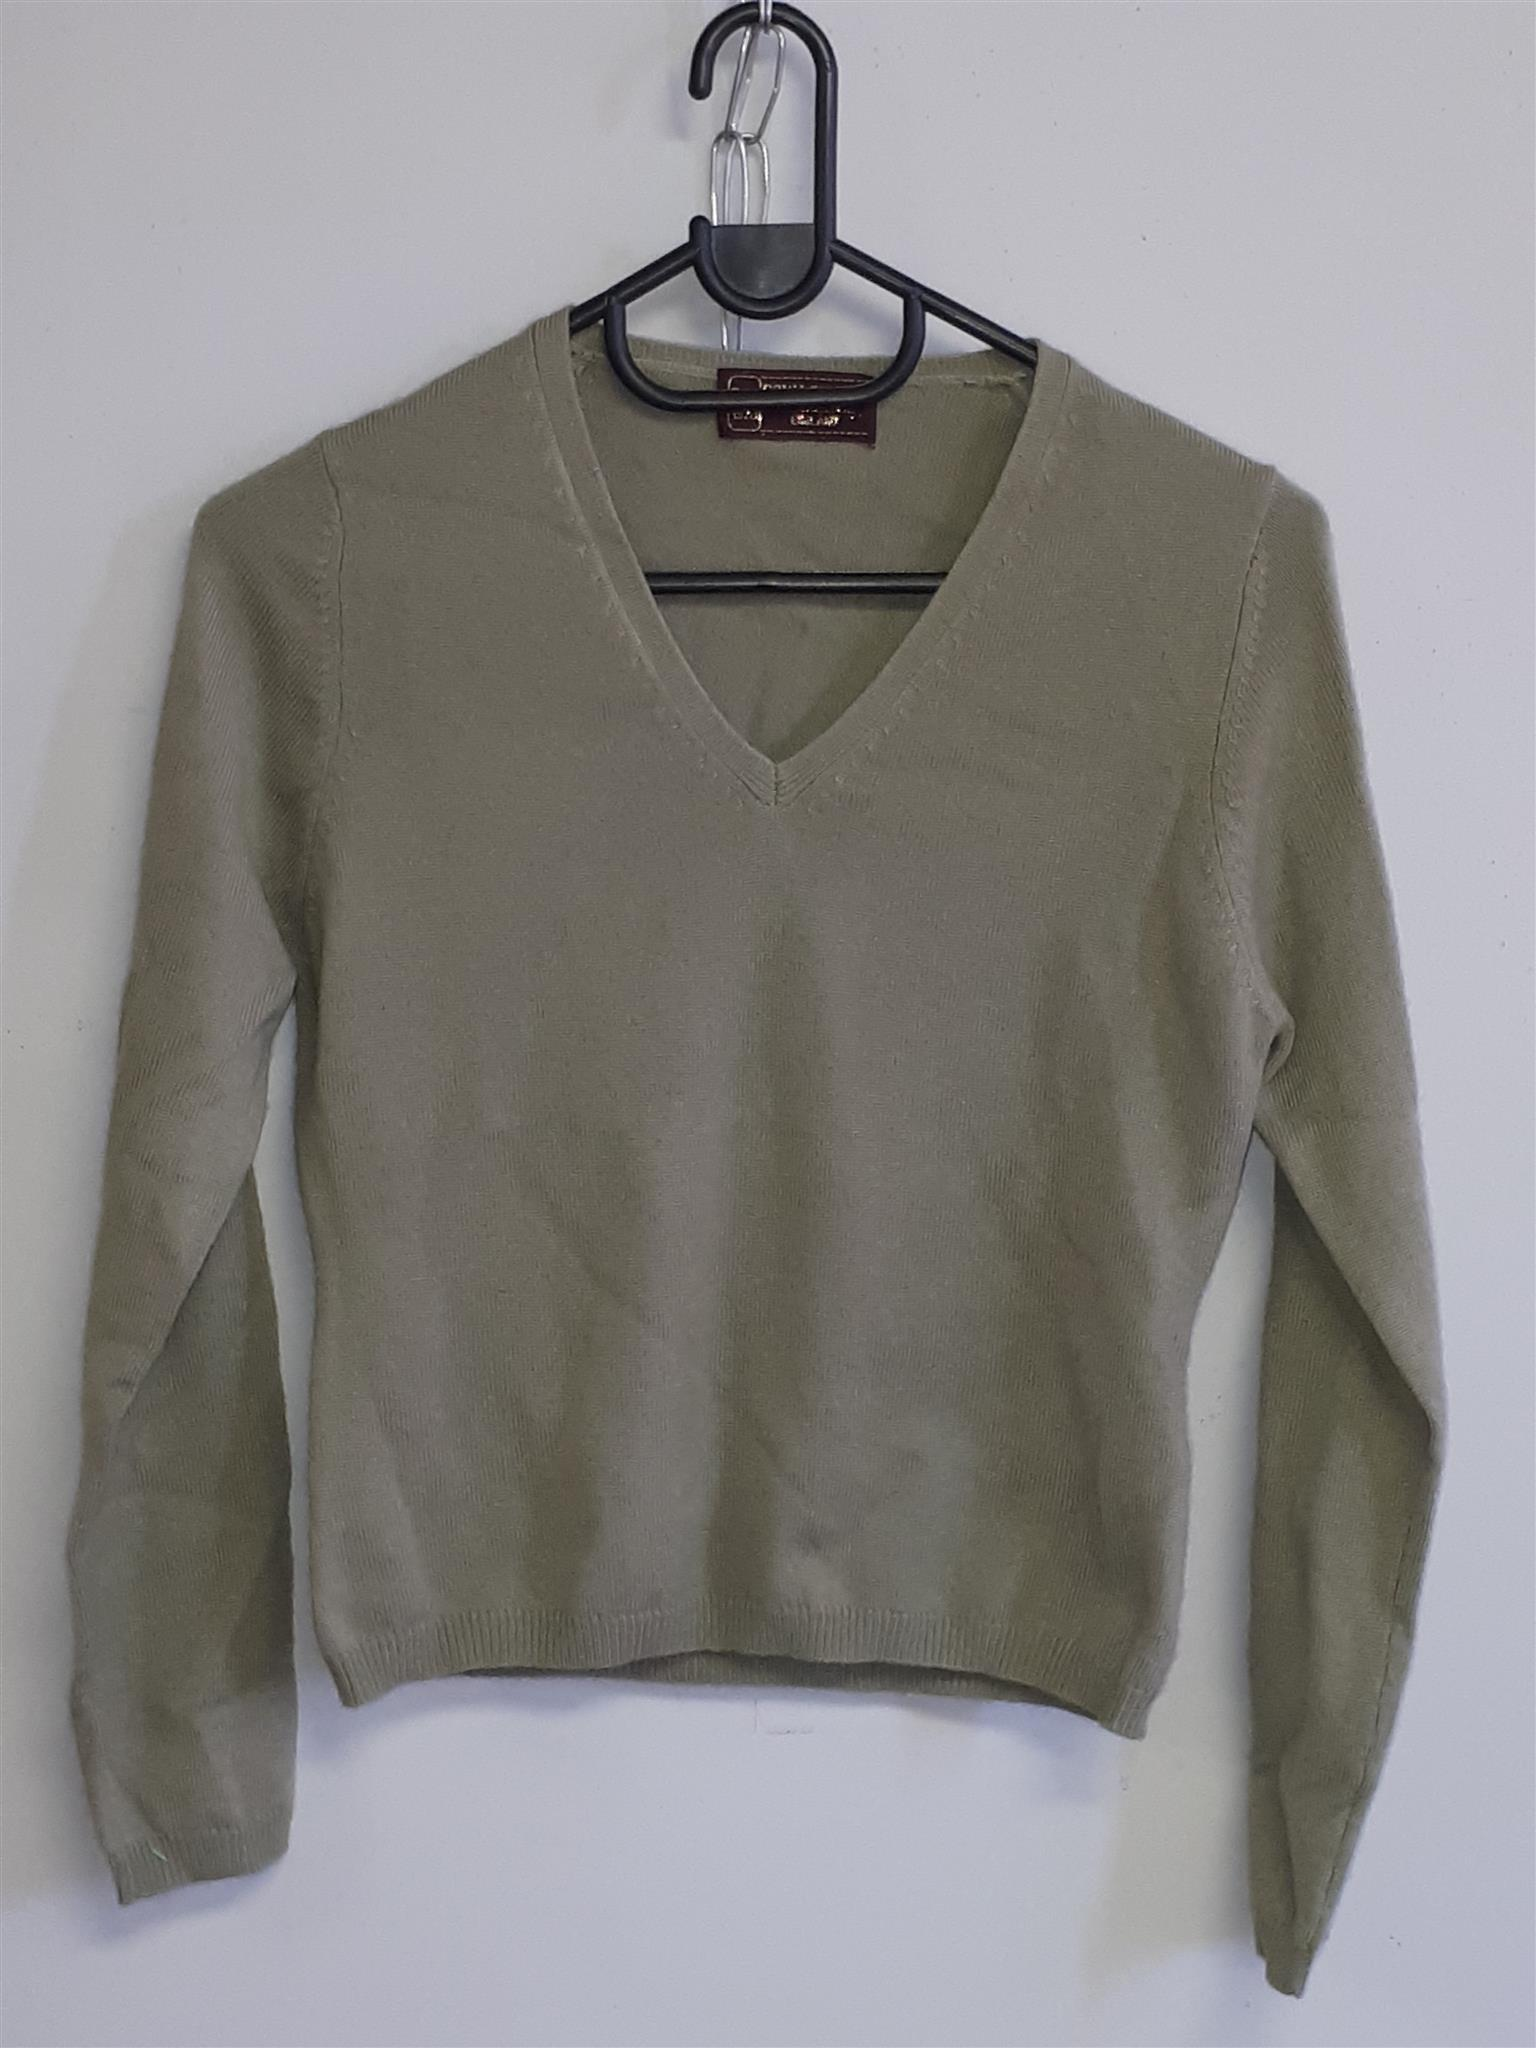 Cashmere Olive Green Pullover V neck - Small